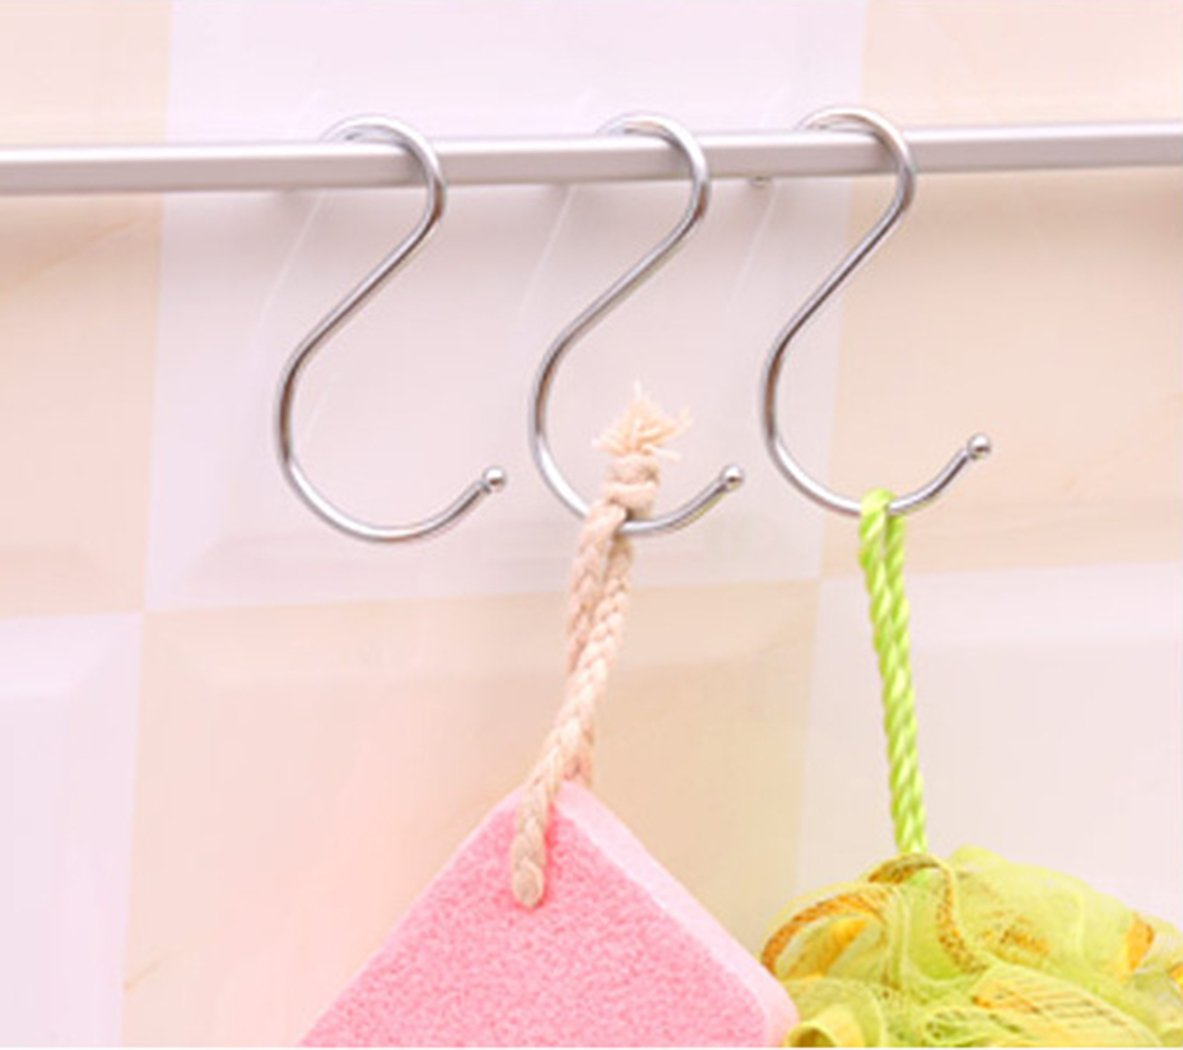 Giantstar 20 Pack  Heavy Duty S Hooks Kitchen Pot Pan Hanger Clothes Storage Rack Size:Large (20pcs/L) by Giant star (Image #6)